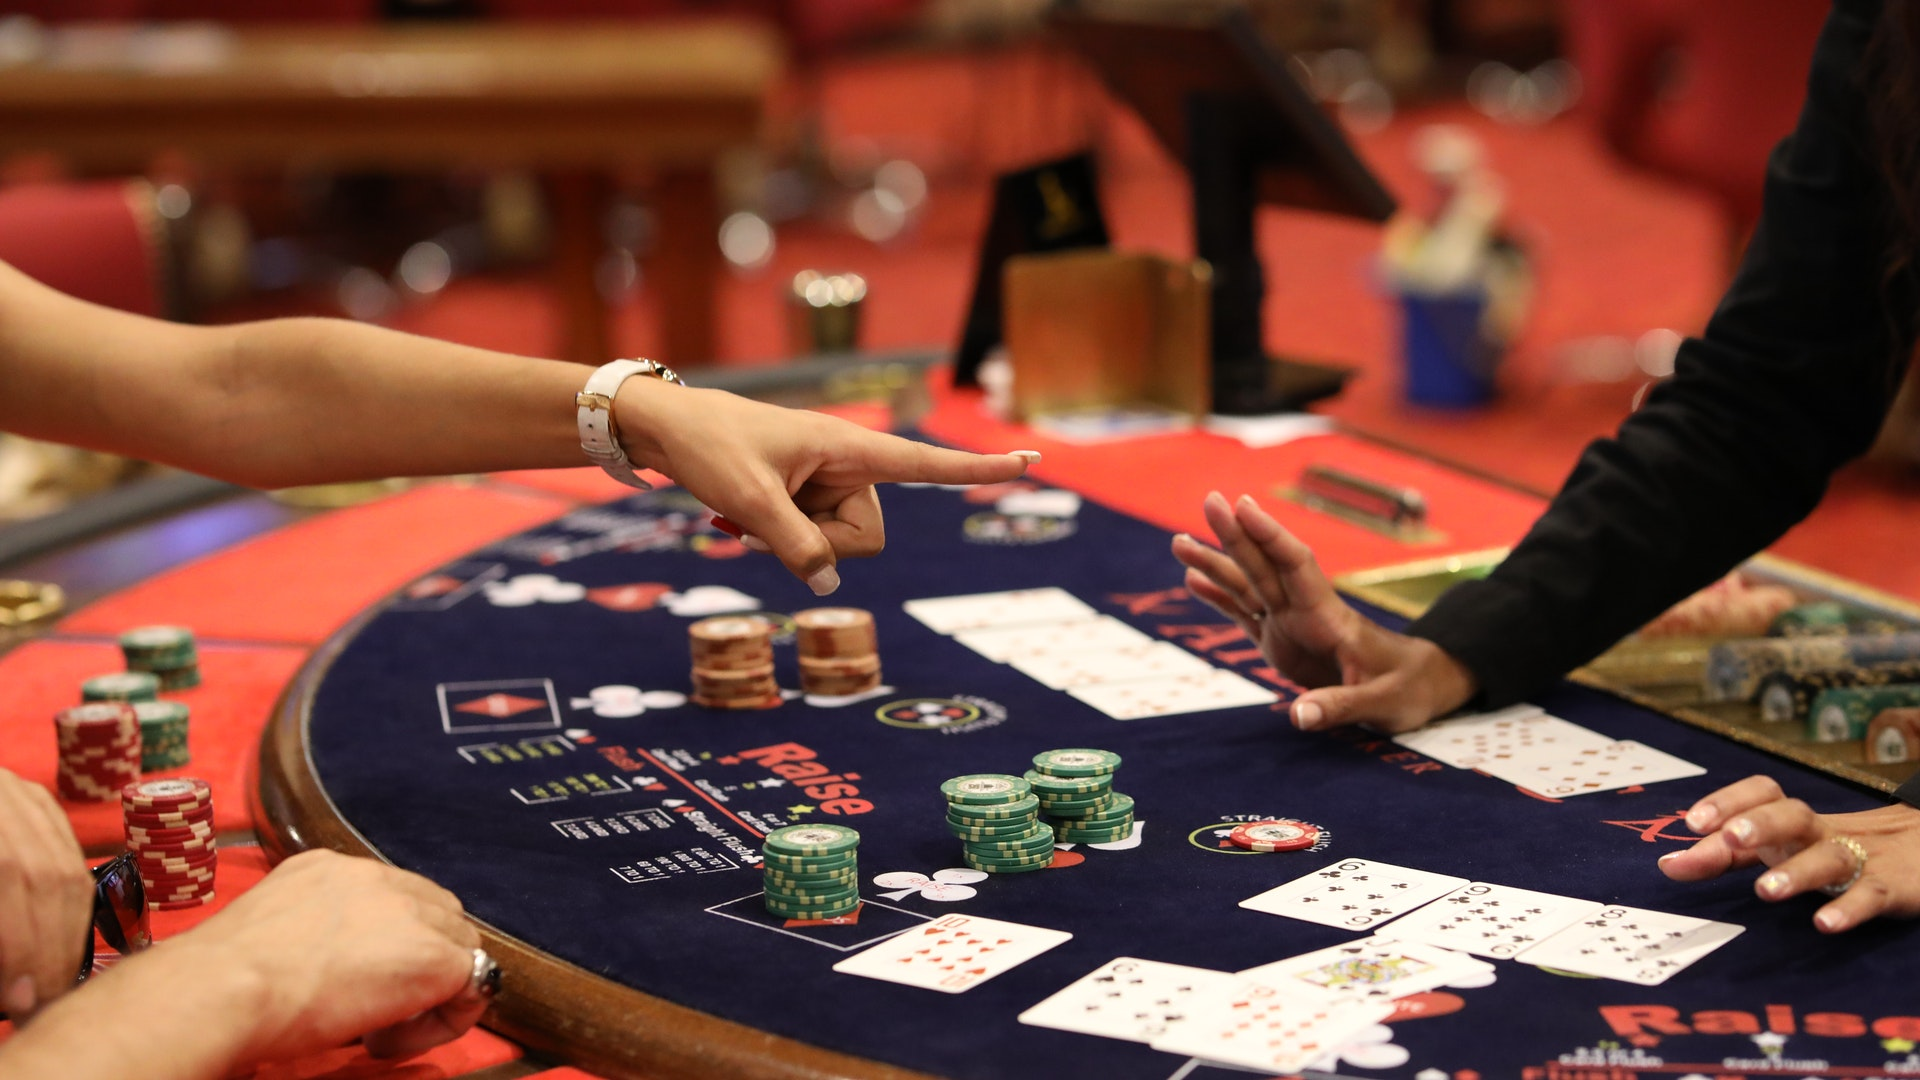 Revealed Facts About Find Top Casino Games for Real Money